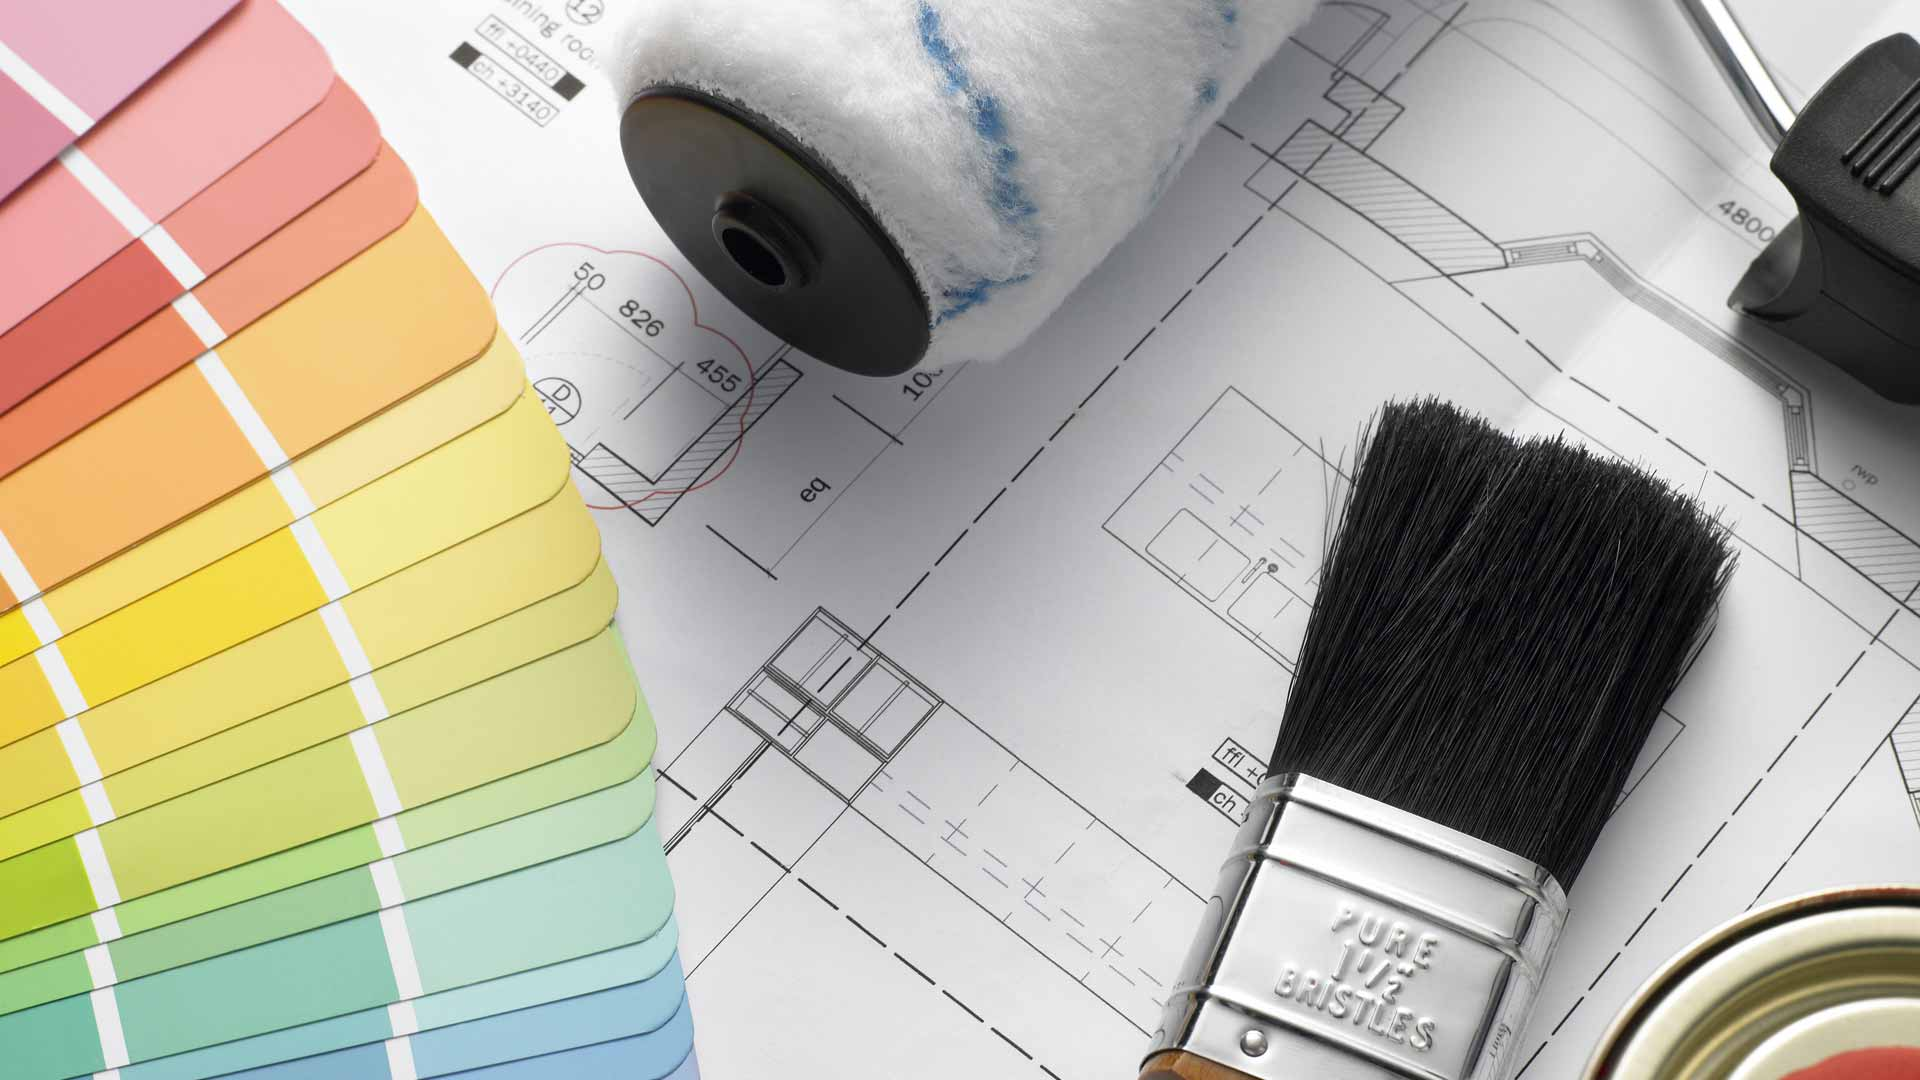 King Decorators are a Glasgow based company who undertake painting and decorating work throughout the UK.